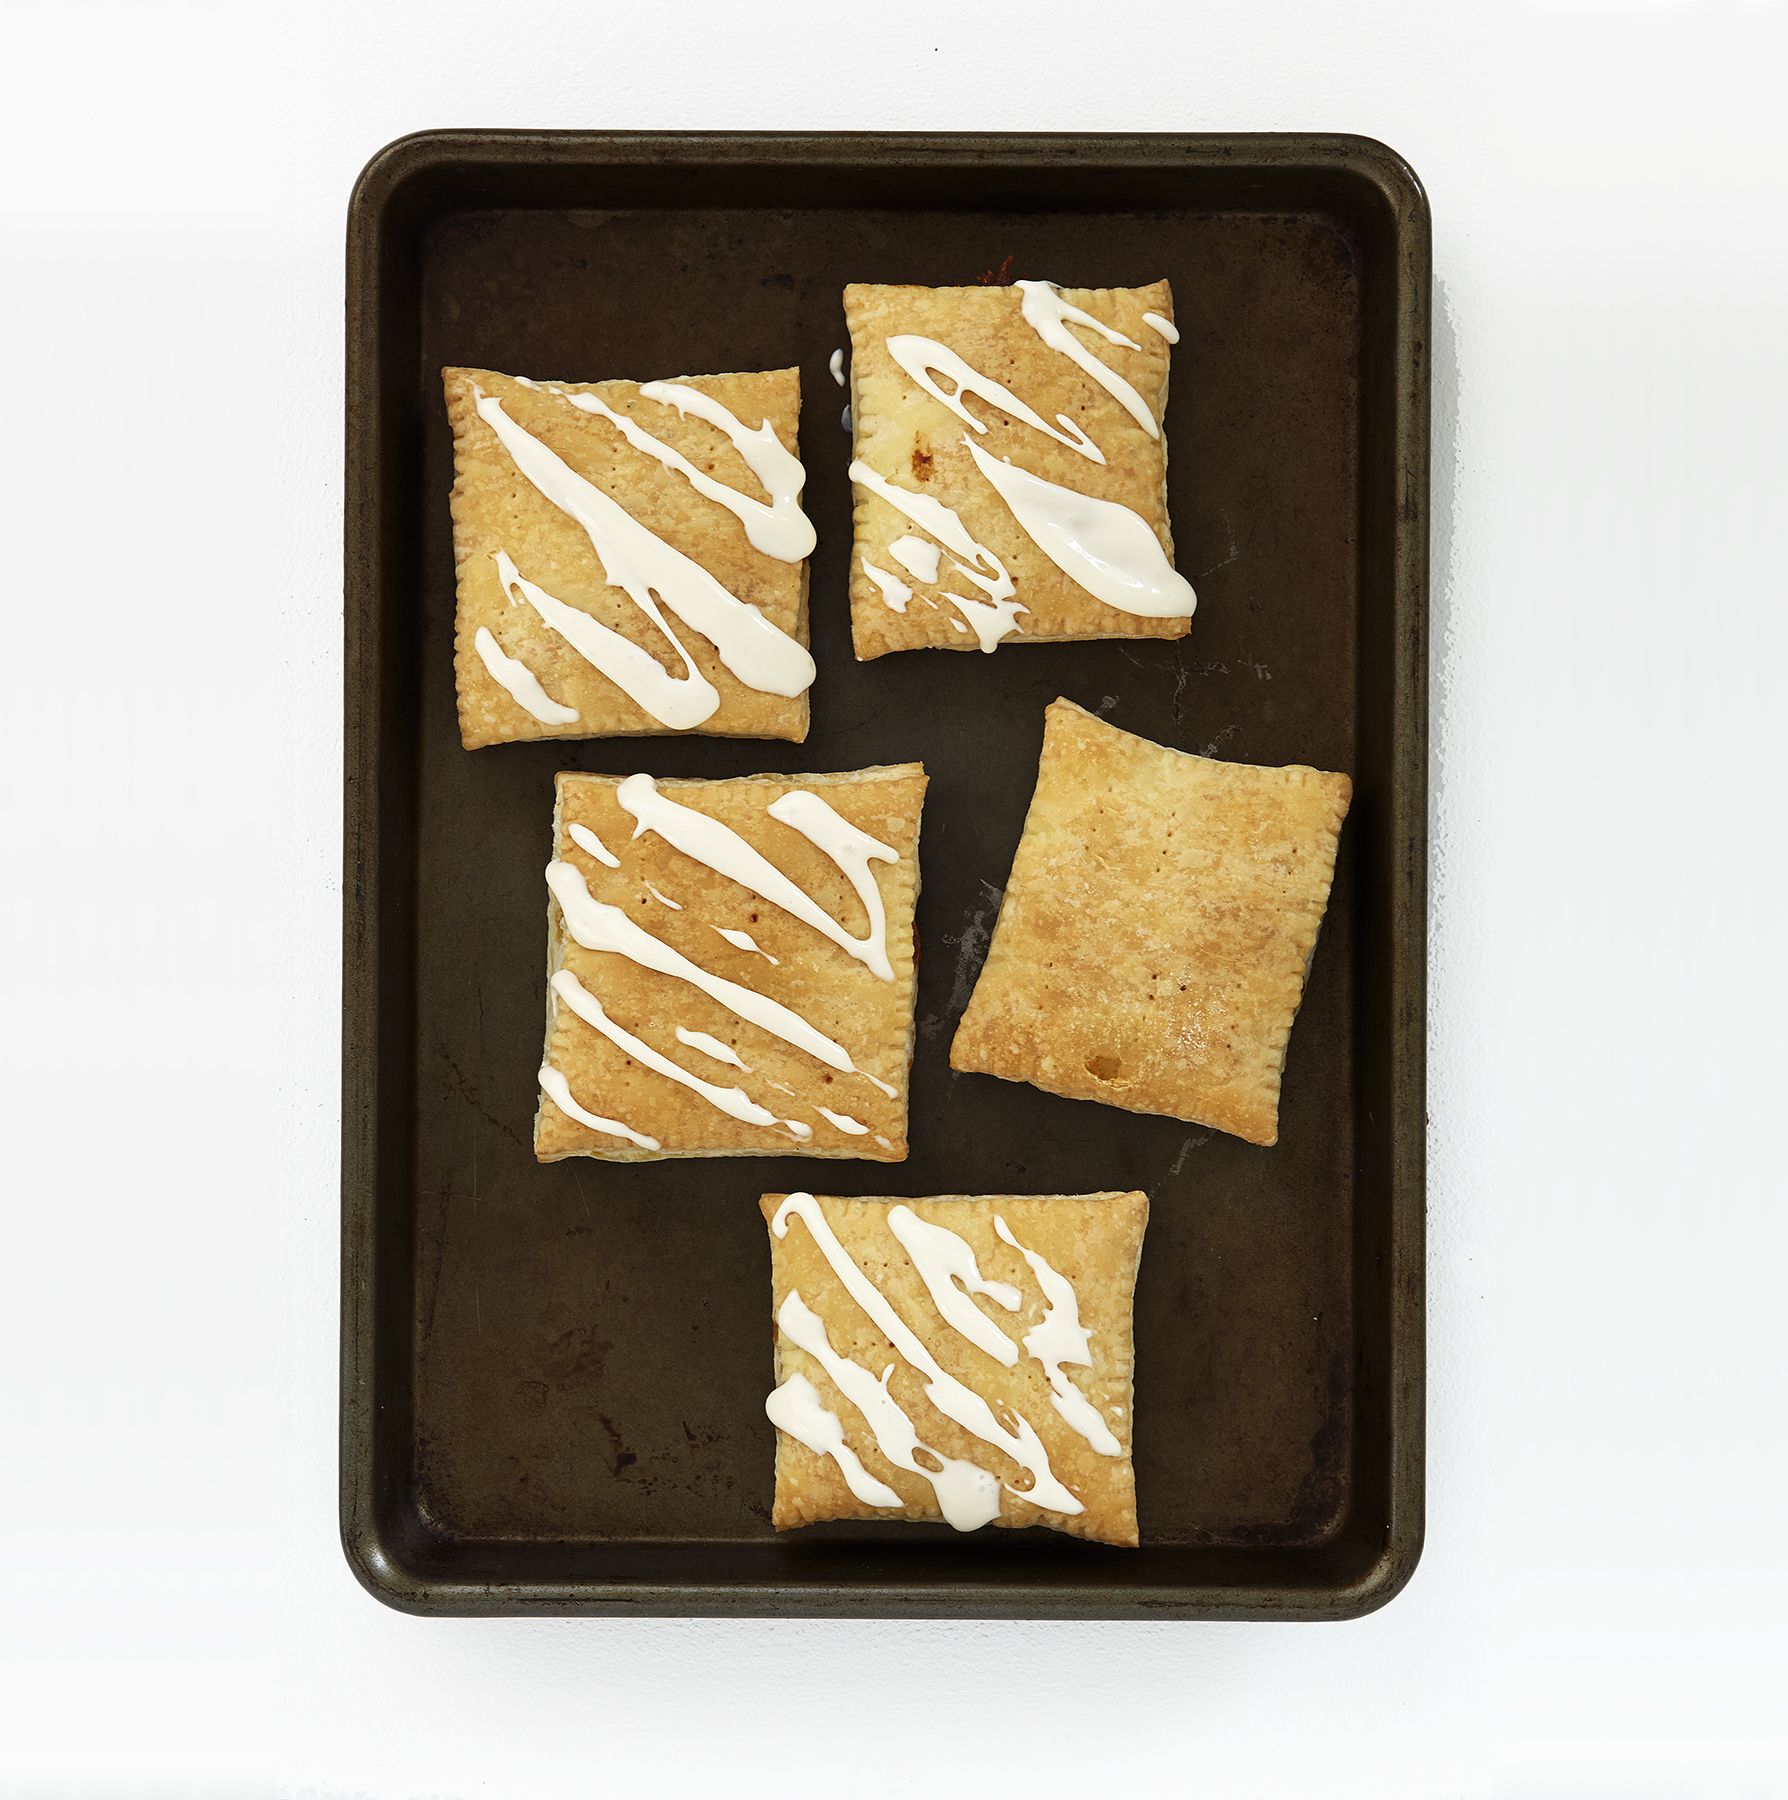 Pumpkin Pie Pop-Tart